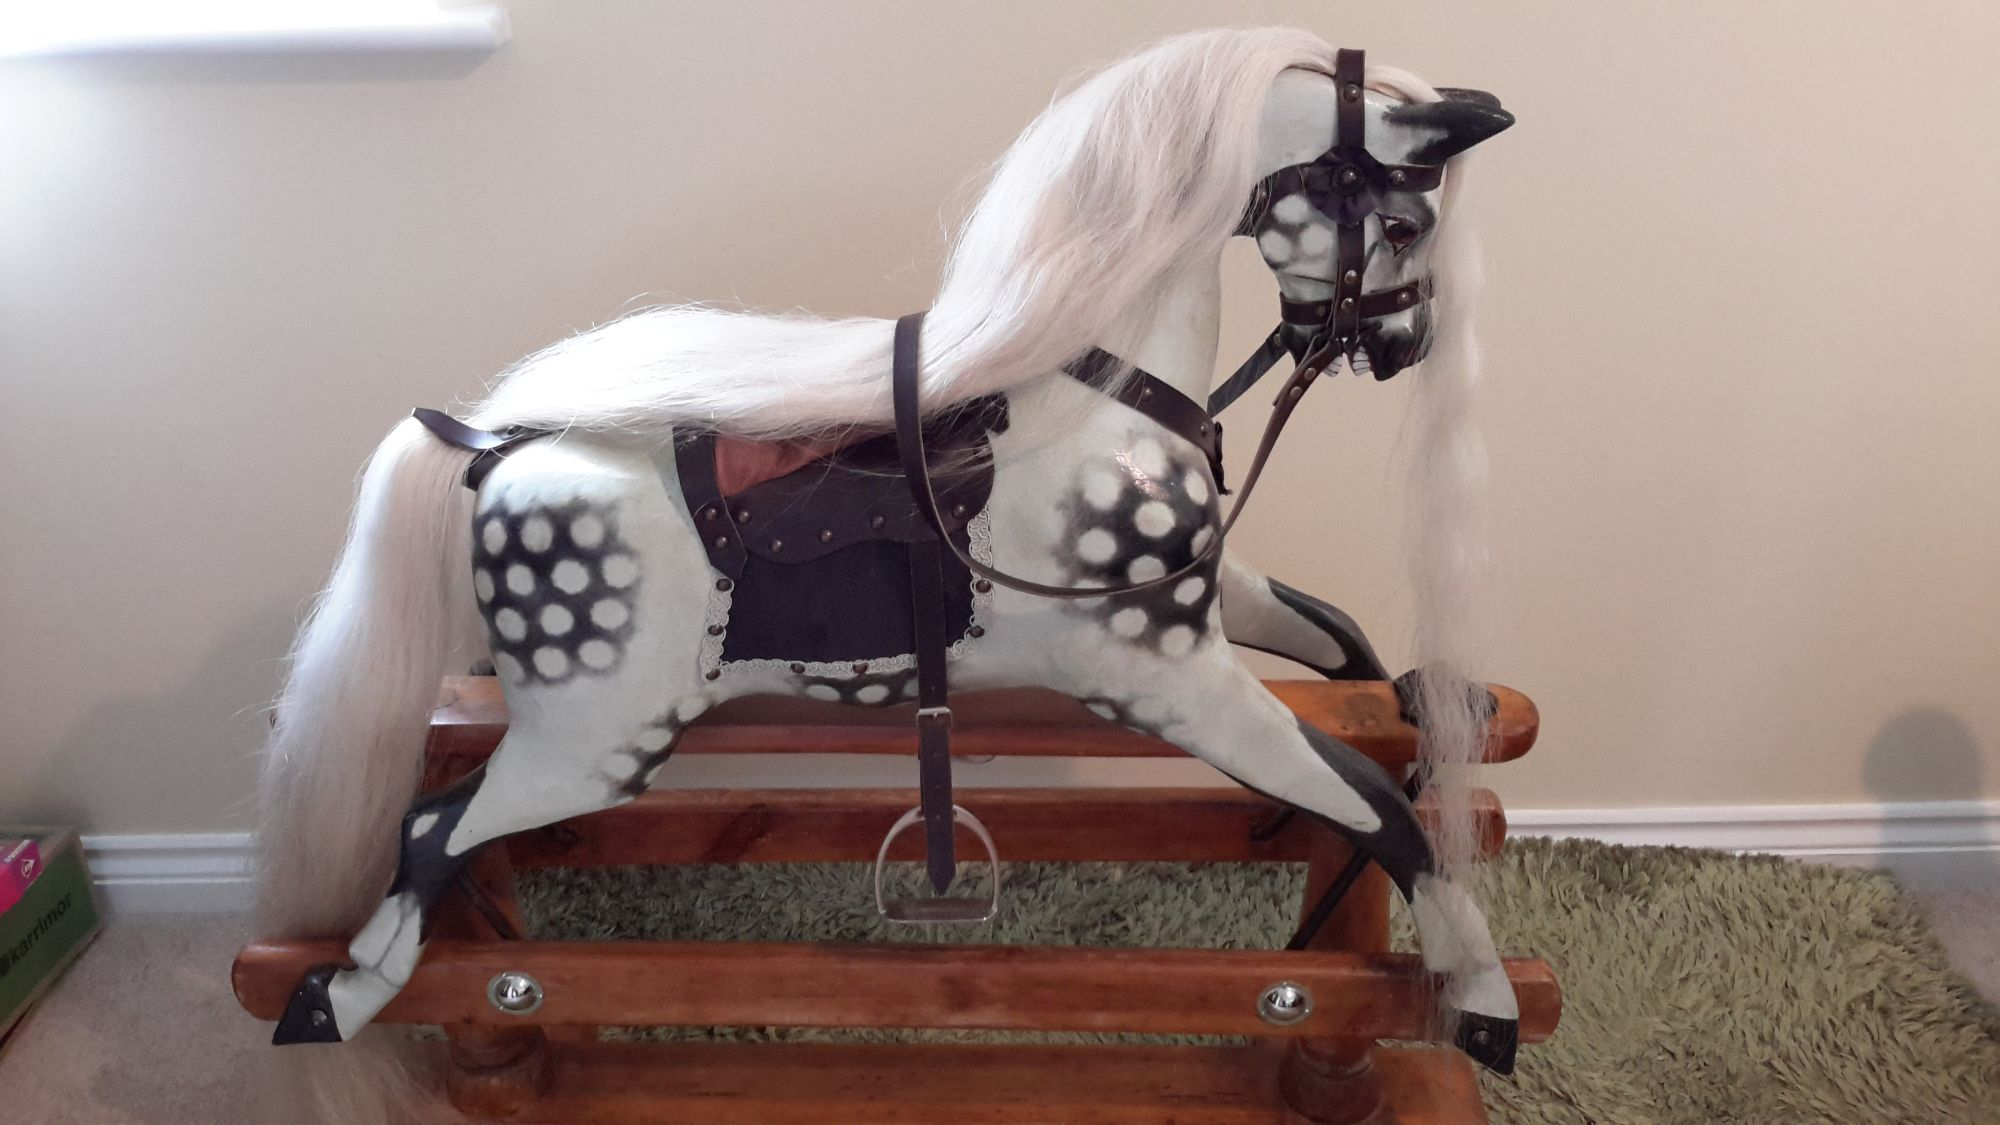 For Sale - Antique J R Smith restored rocking horse